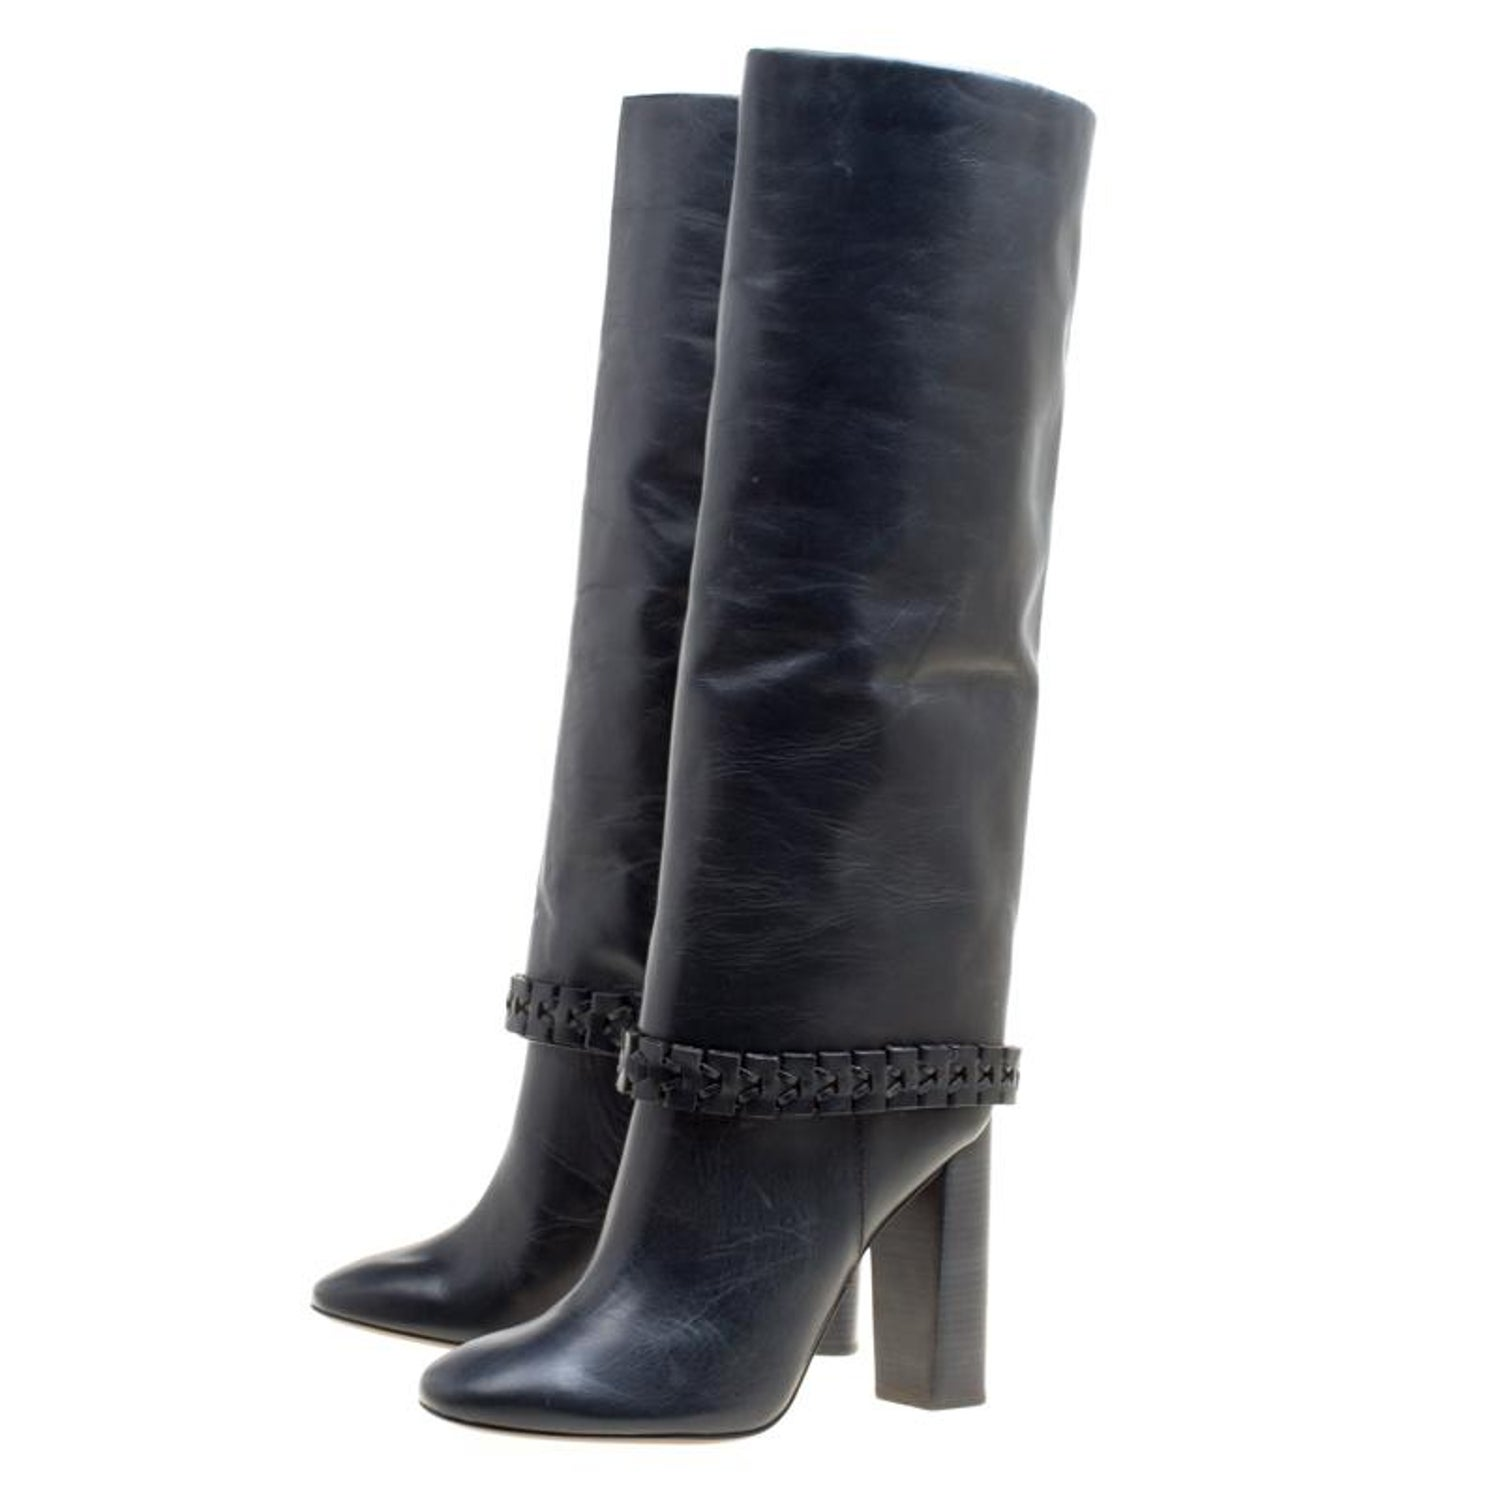 36f7d2822c6e Tory Burch Dark Blue Leather Sarava Braid Detail Knee Boots Size 40 For  Sale at 1stdibs